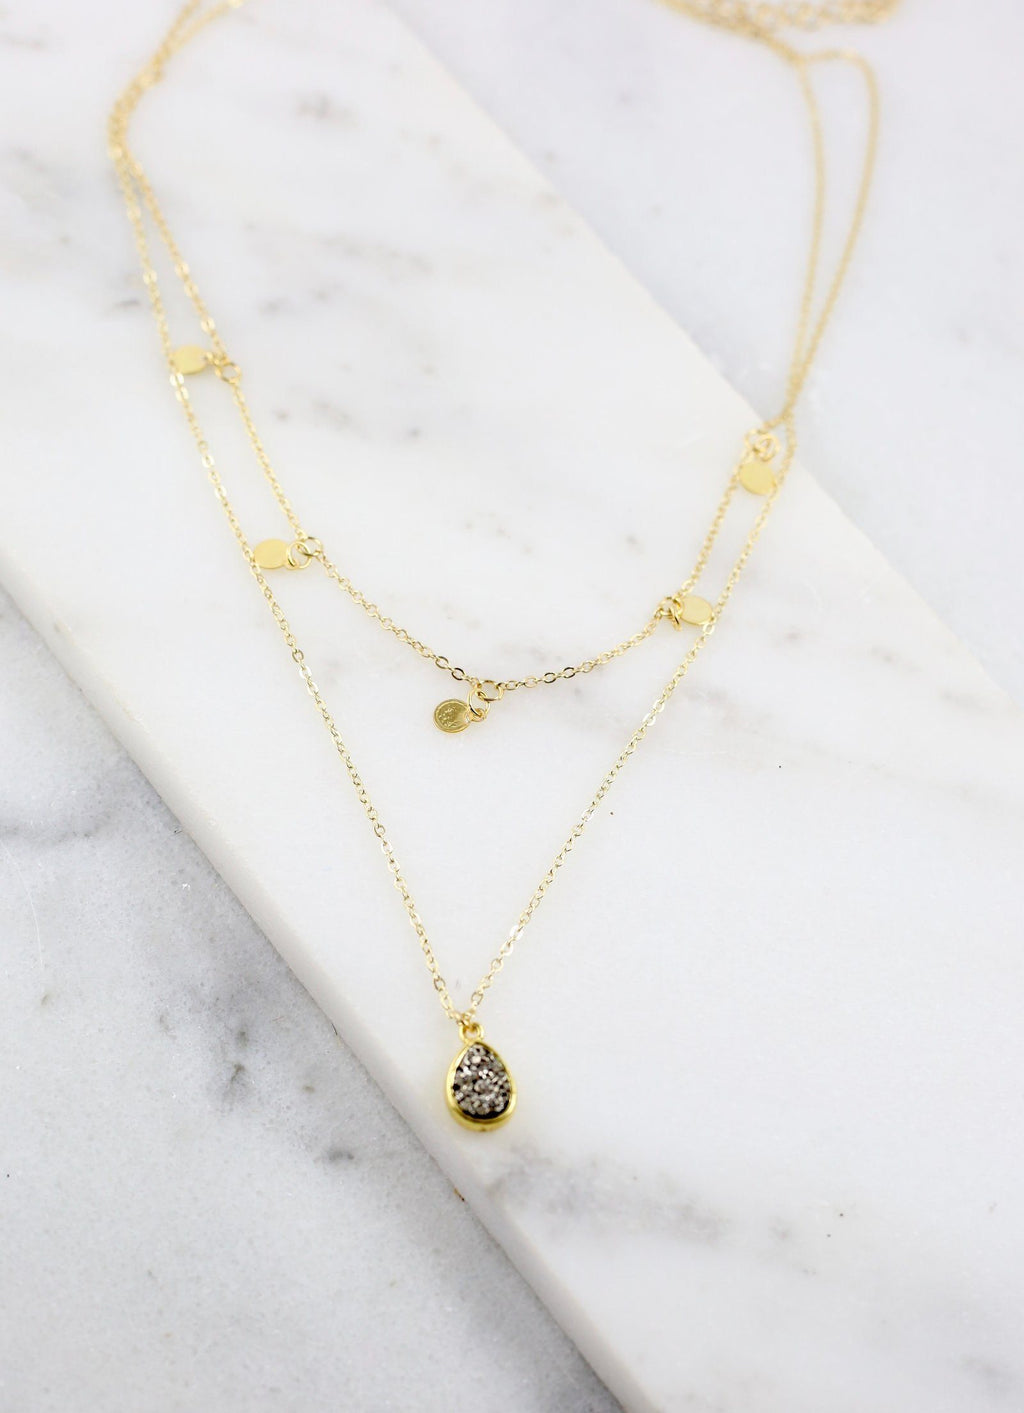 Clancey Layered Necklace With Black Druzy - Caroline Hill